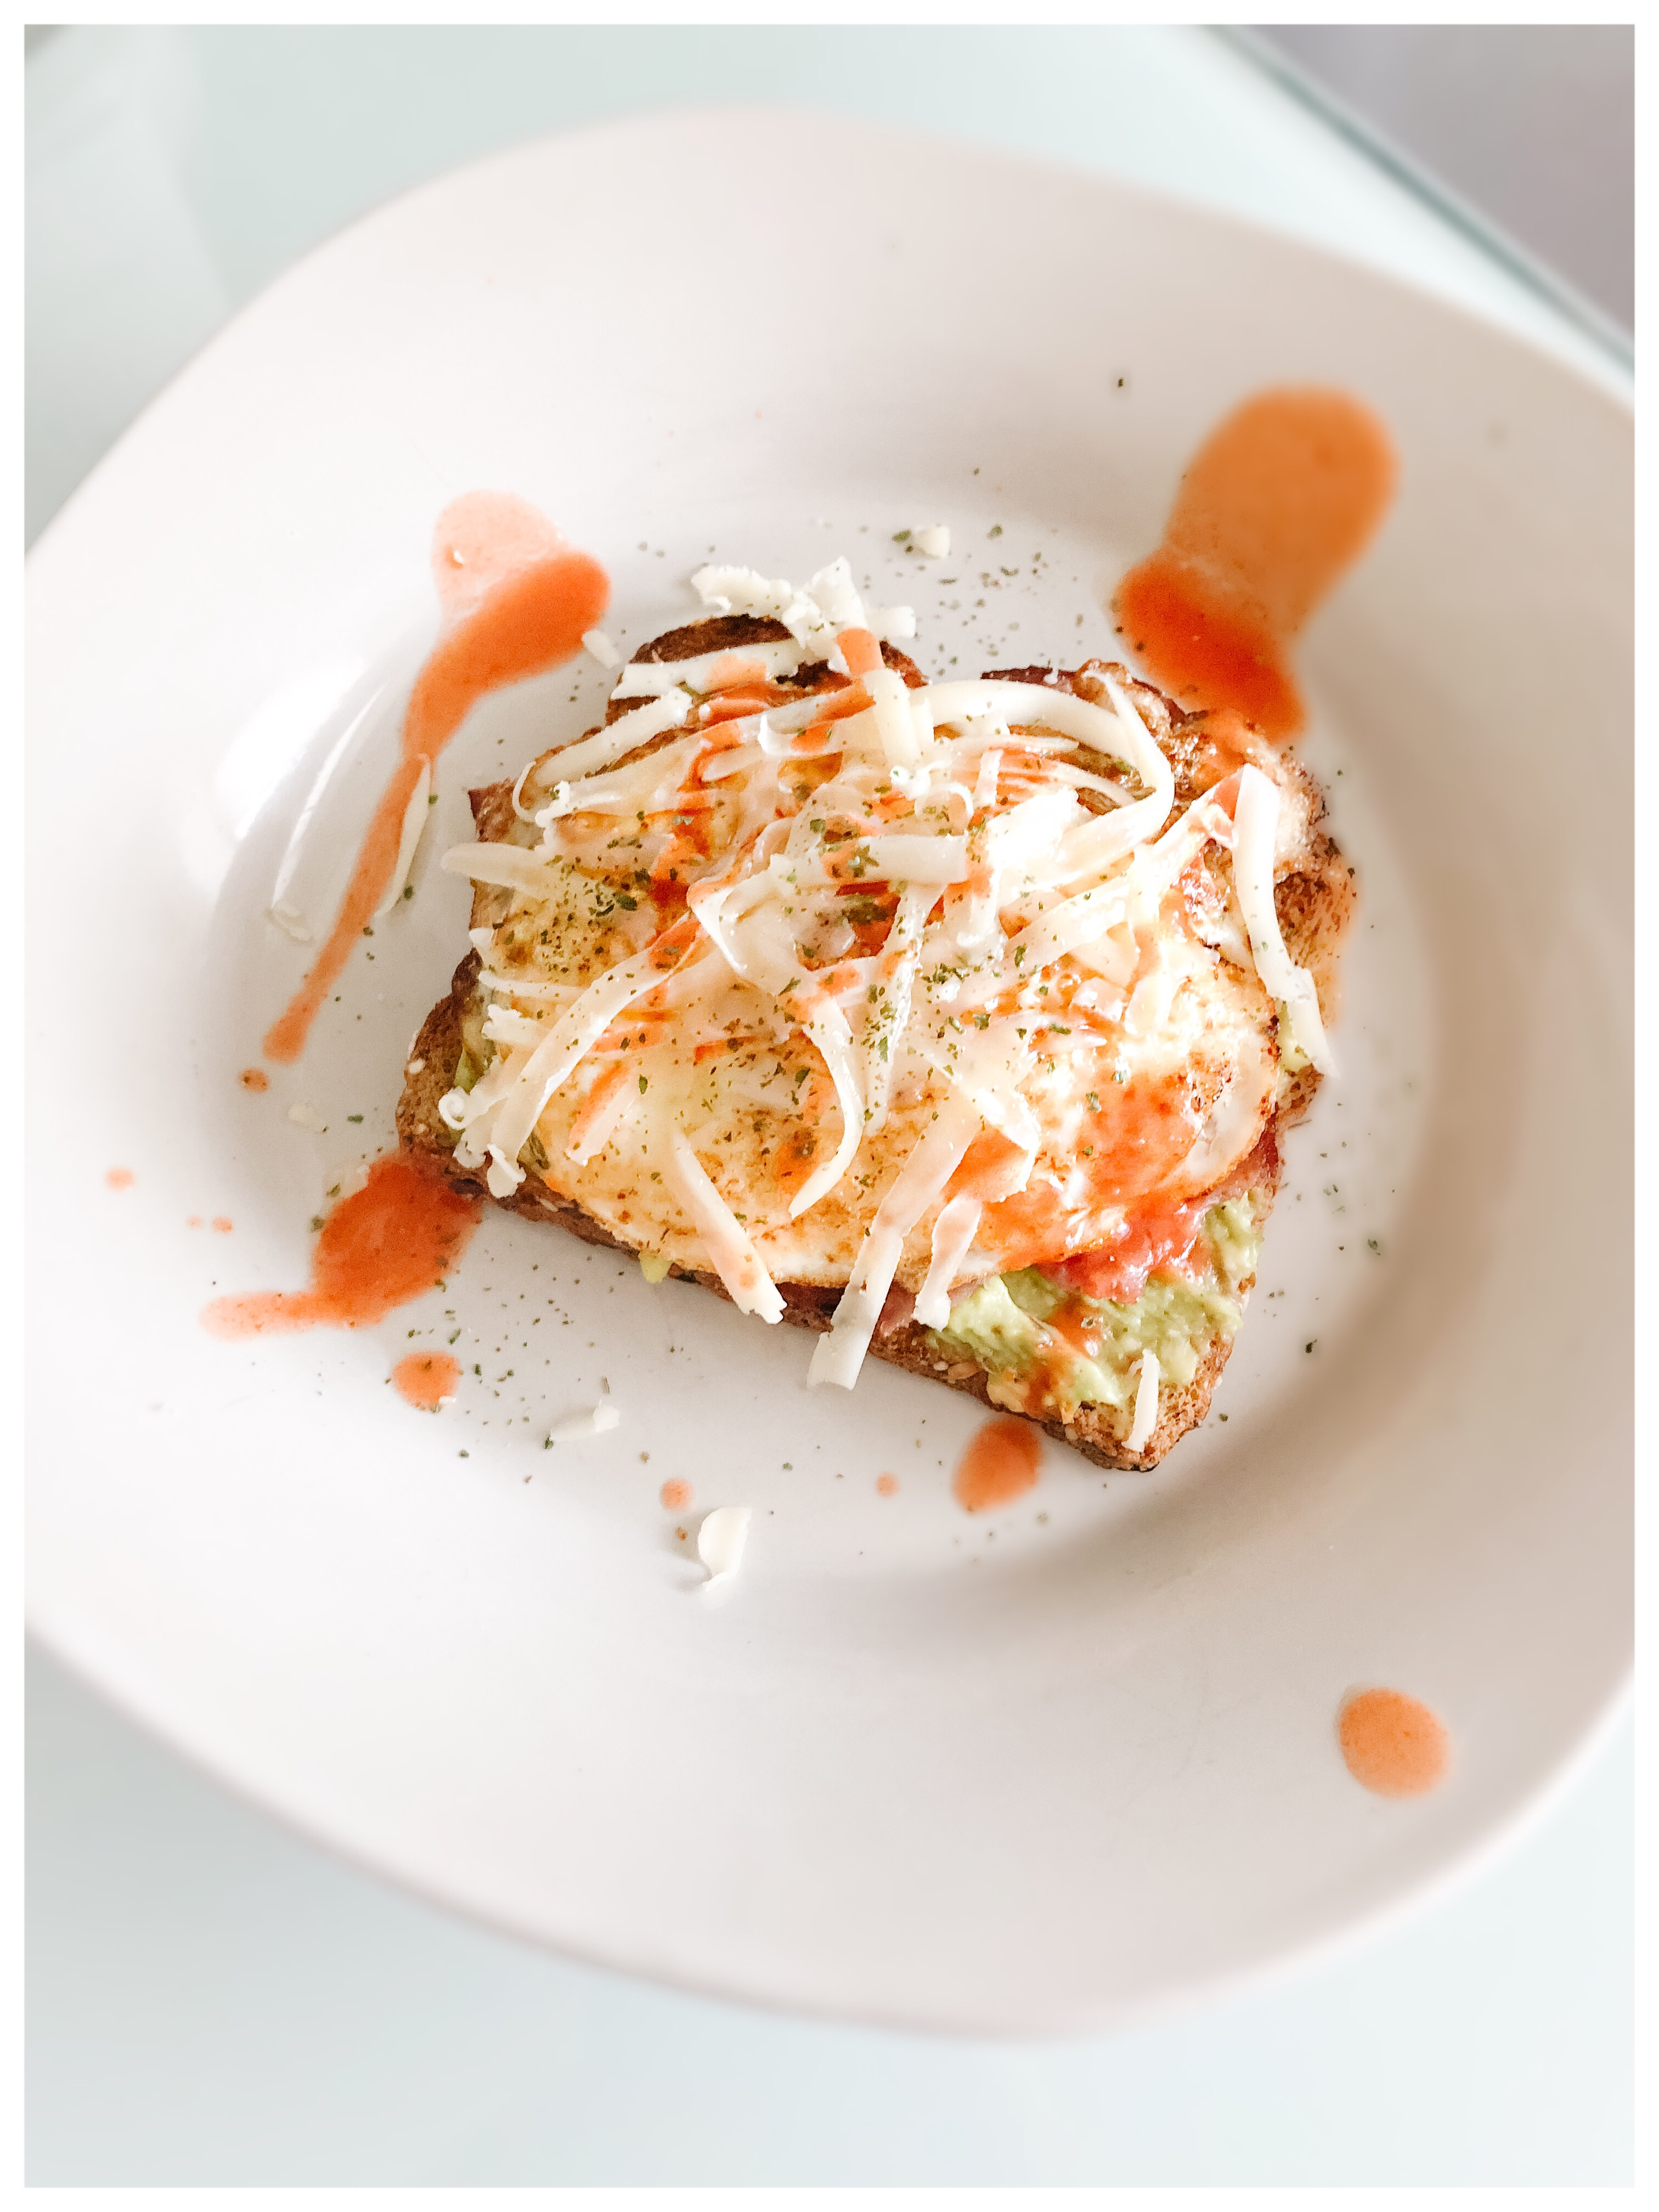 The Best Avocado Toast Recipe - ripe avocado mixed with olive oil, spices over hearty whole wheat toast with a fried egg and Frank's Red Hot sauce is the perfect weekend breakfast